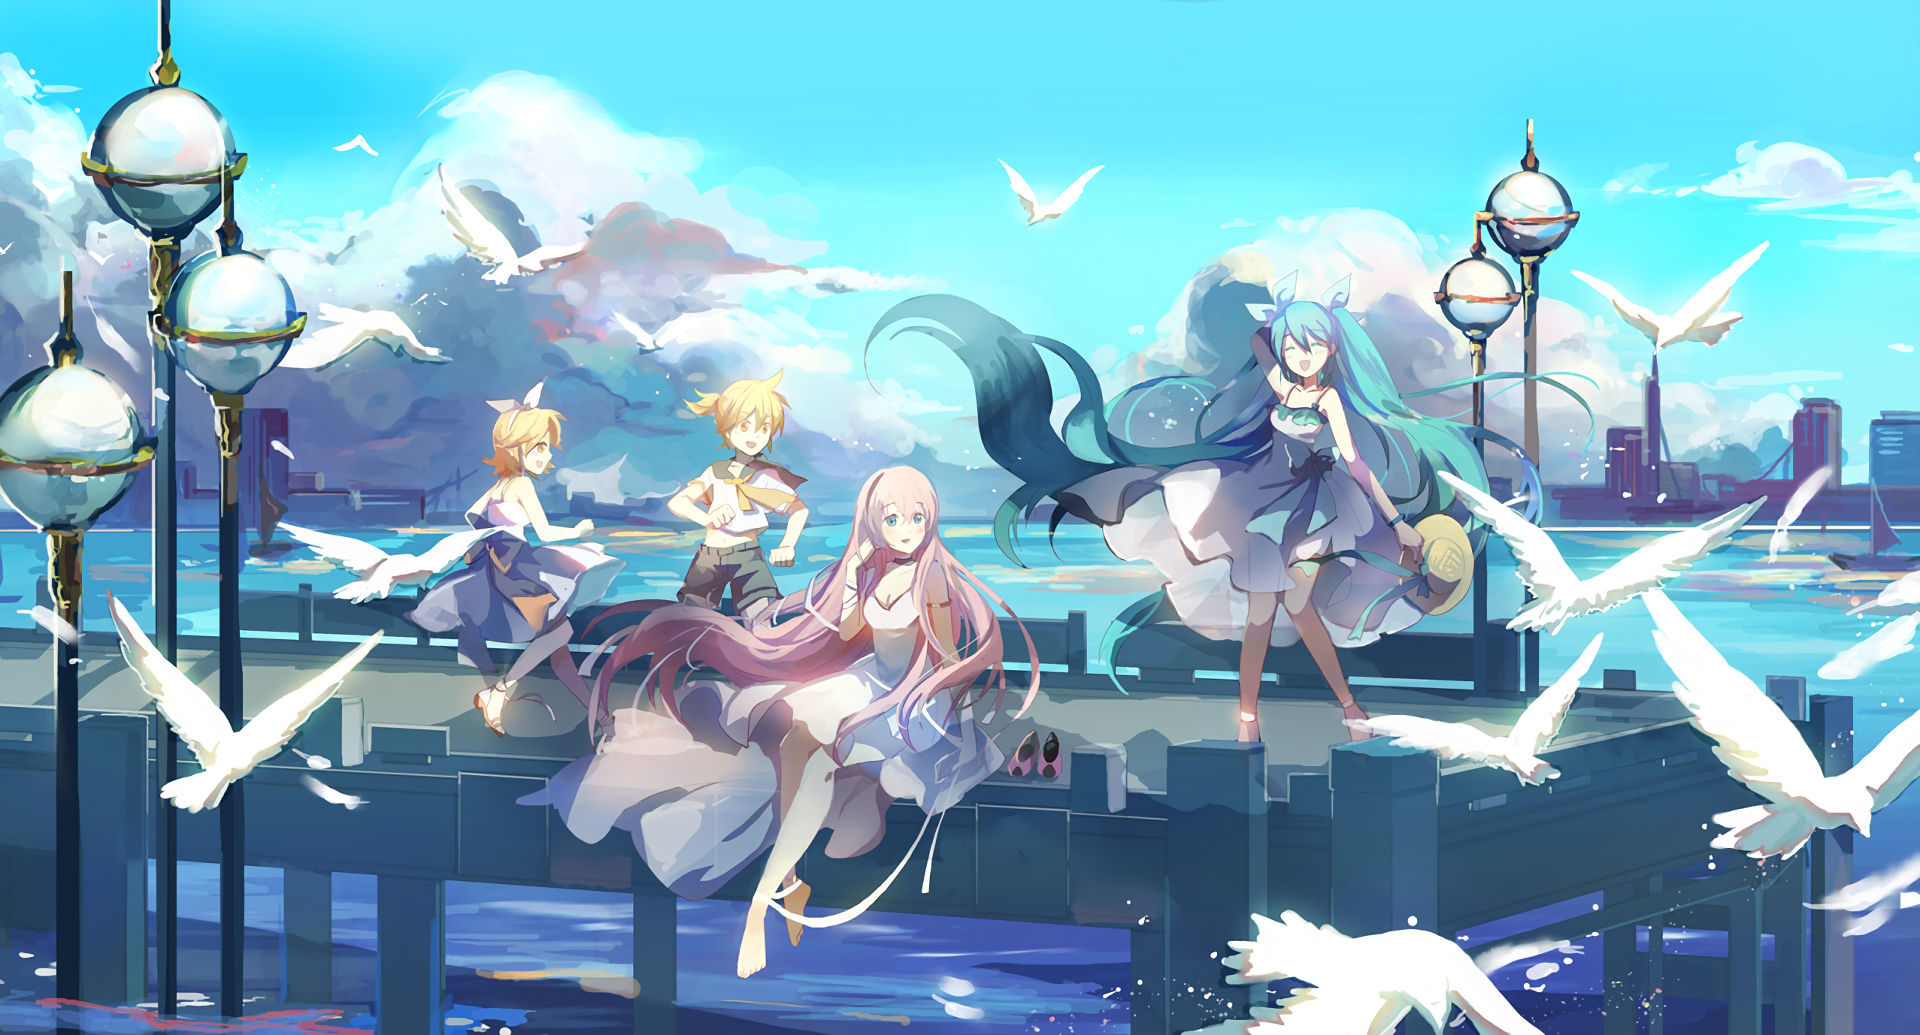 1920x1035 Vocaloid Wallpaper and Background Image | 1920x1035 | ID ...